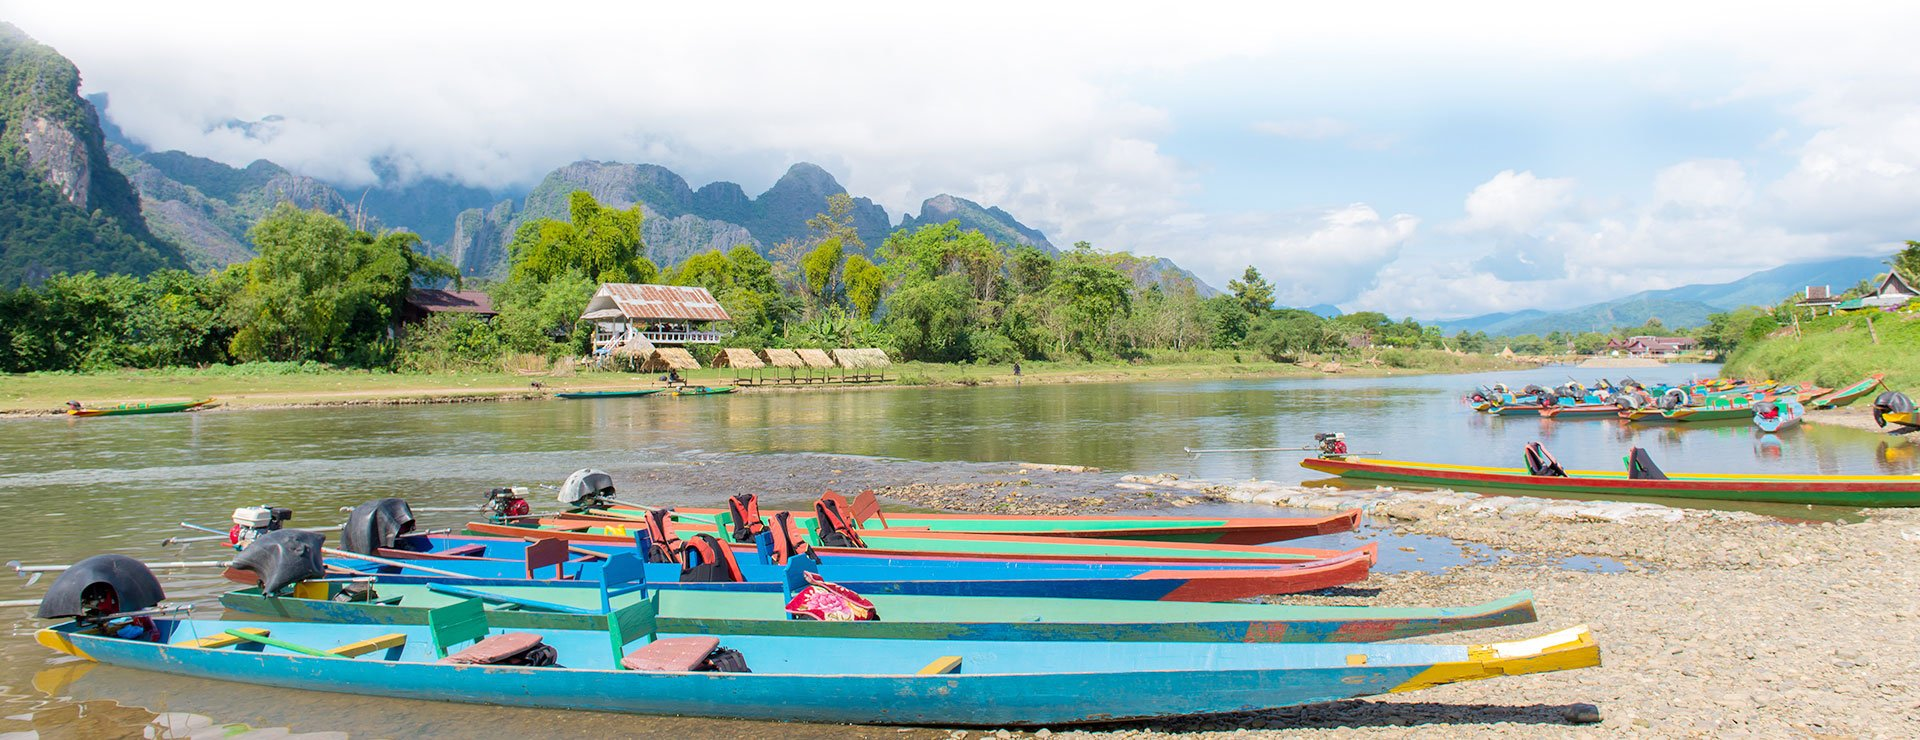 Laos for first-timers: where should you go?